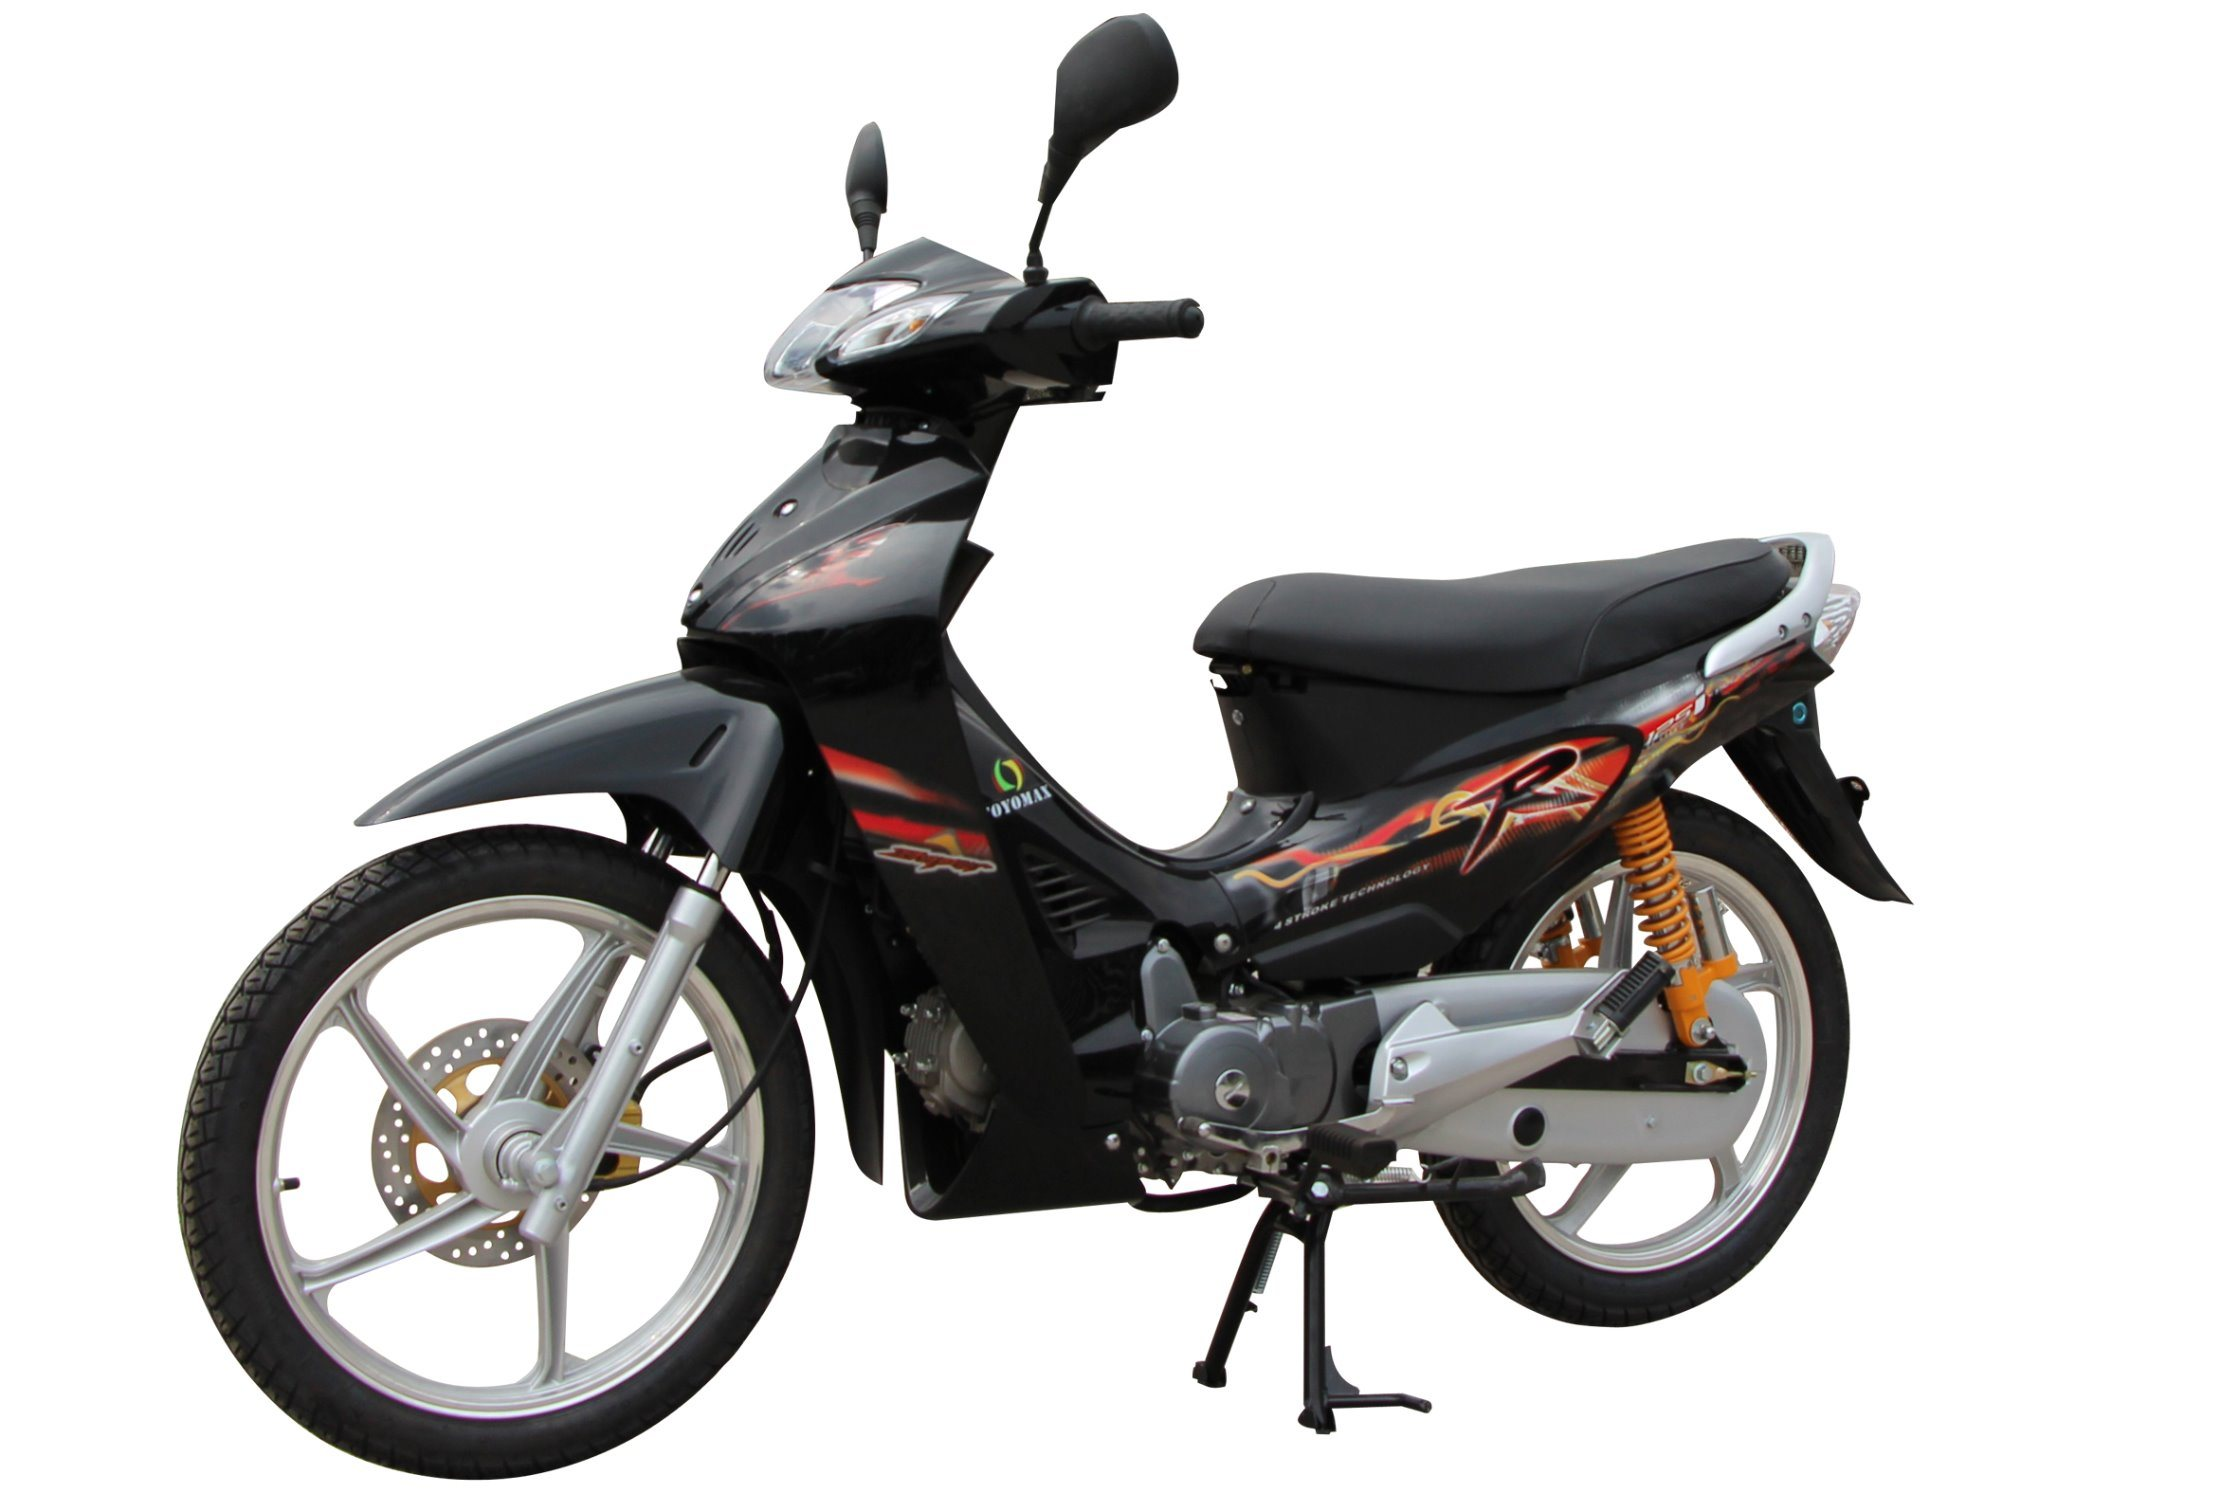 125cc Cub Motorcycle 2017 Top Star Functional